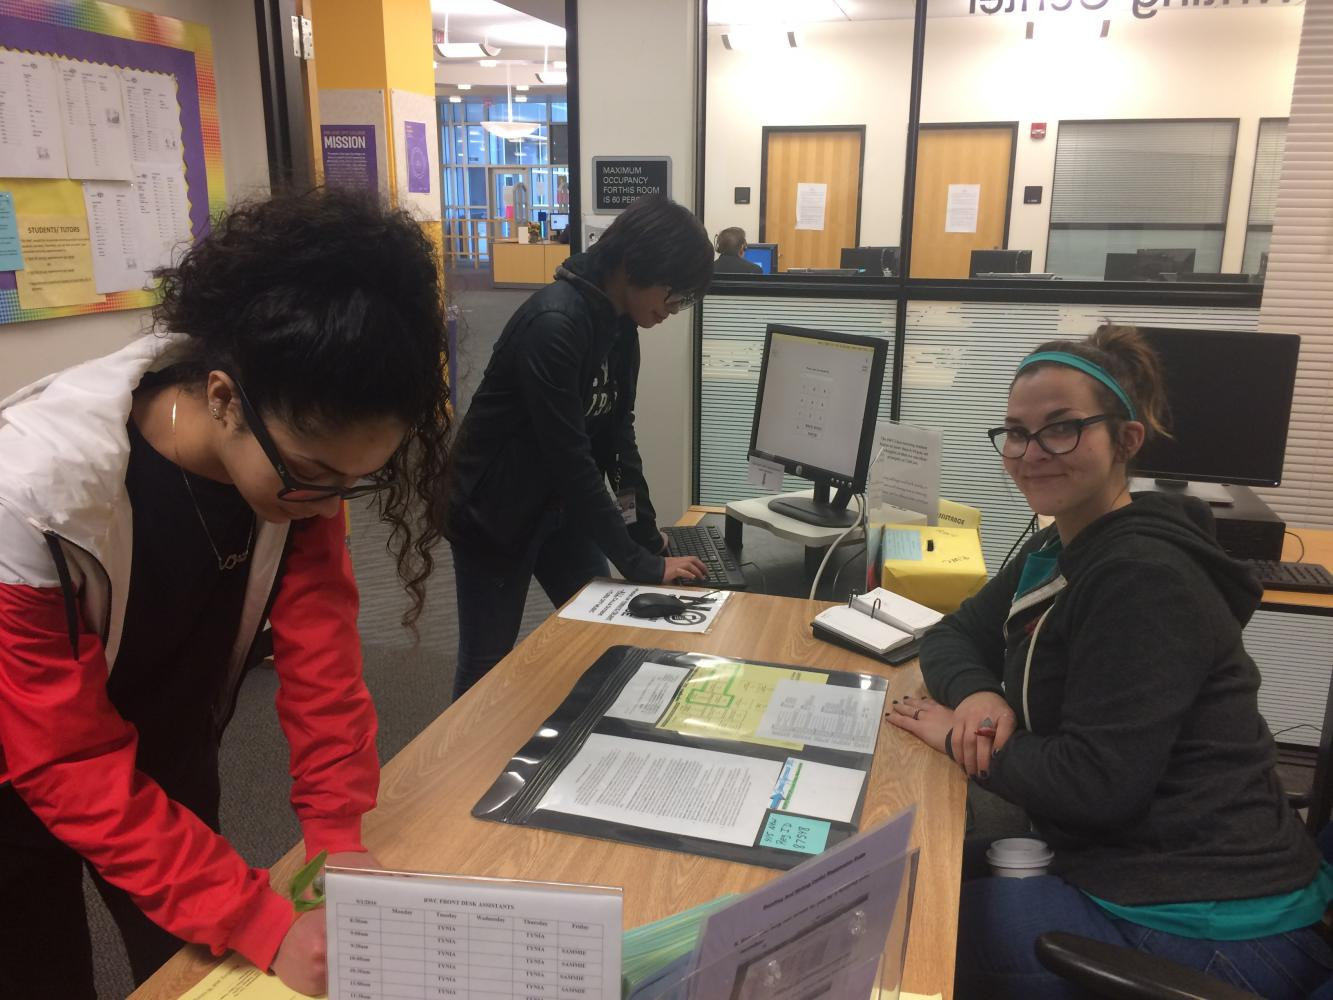 (Left) Peer tutors at the RWC Noor Basma, Lauren Apostle and Sammie Gilmore demonstrate how to sign in for a tutoring session.